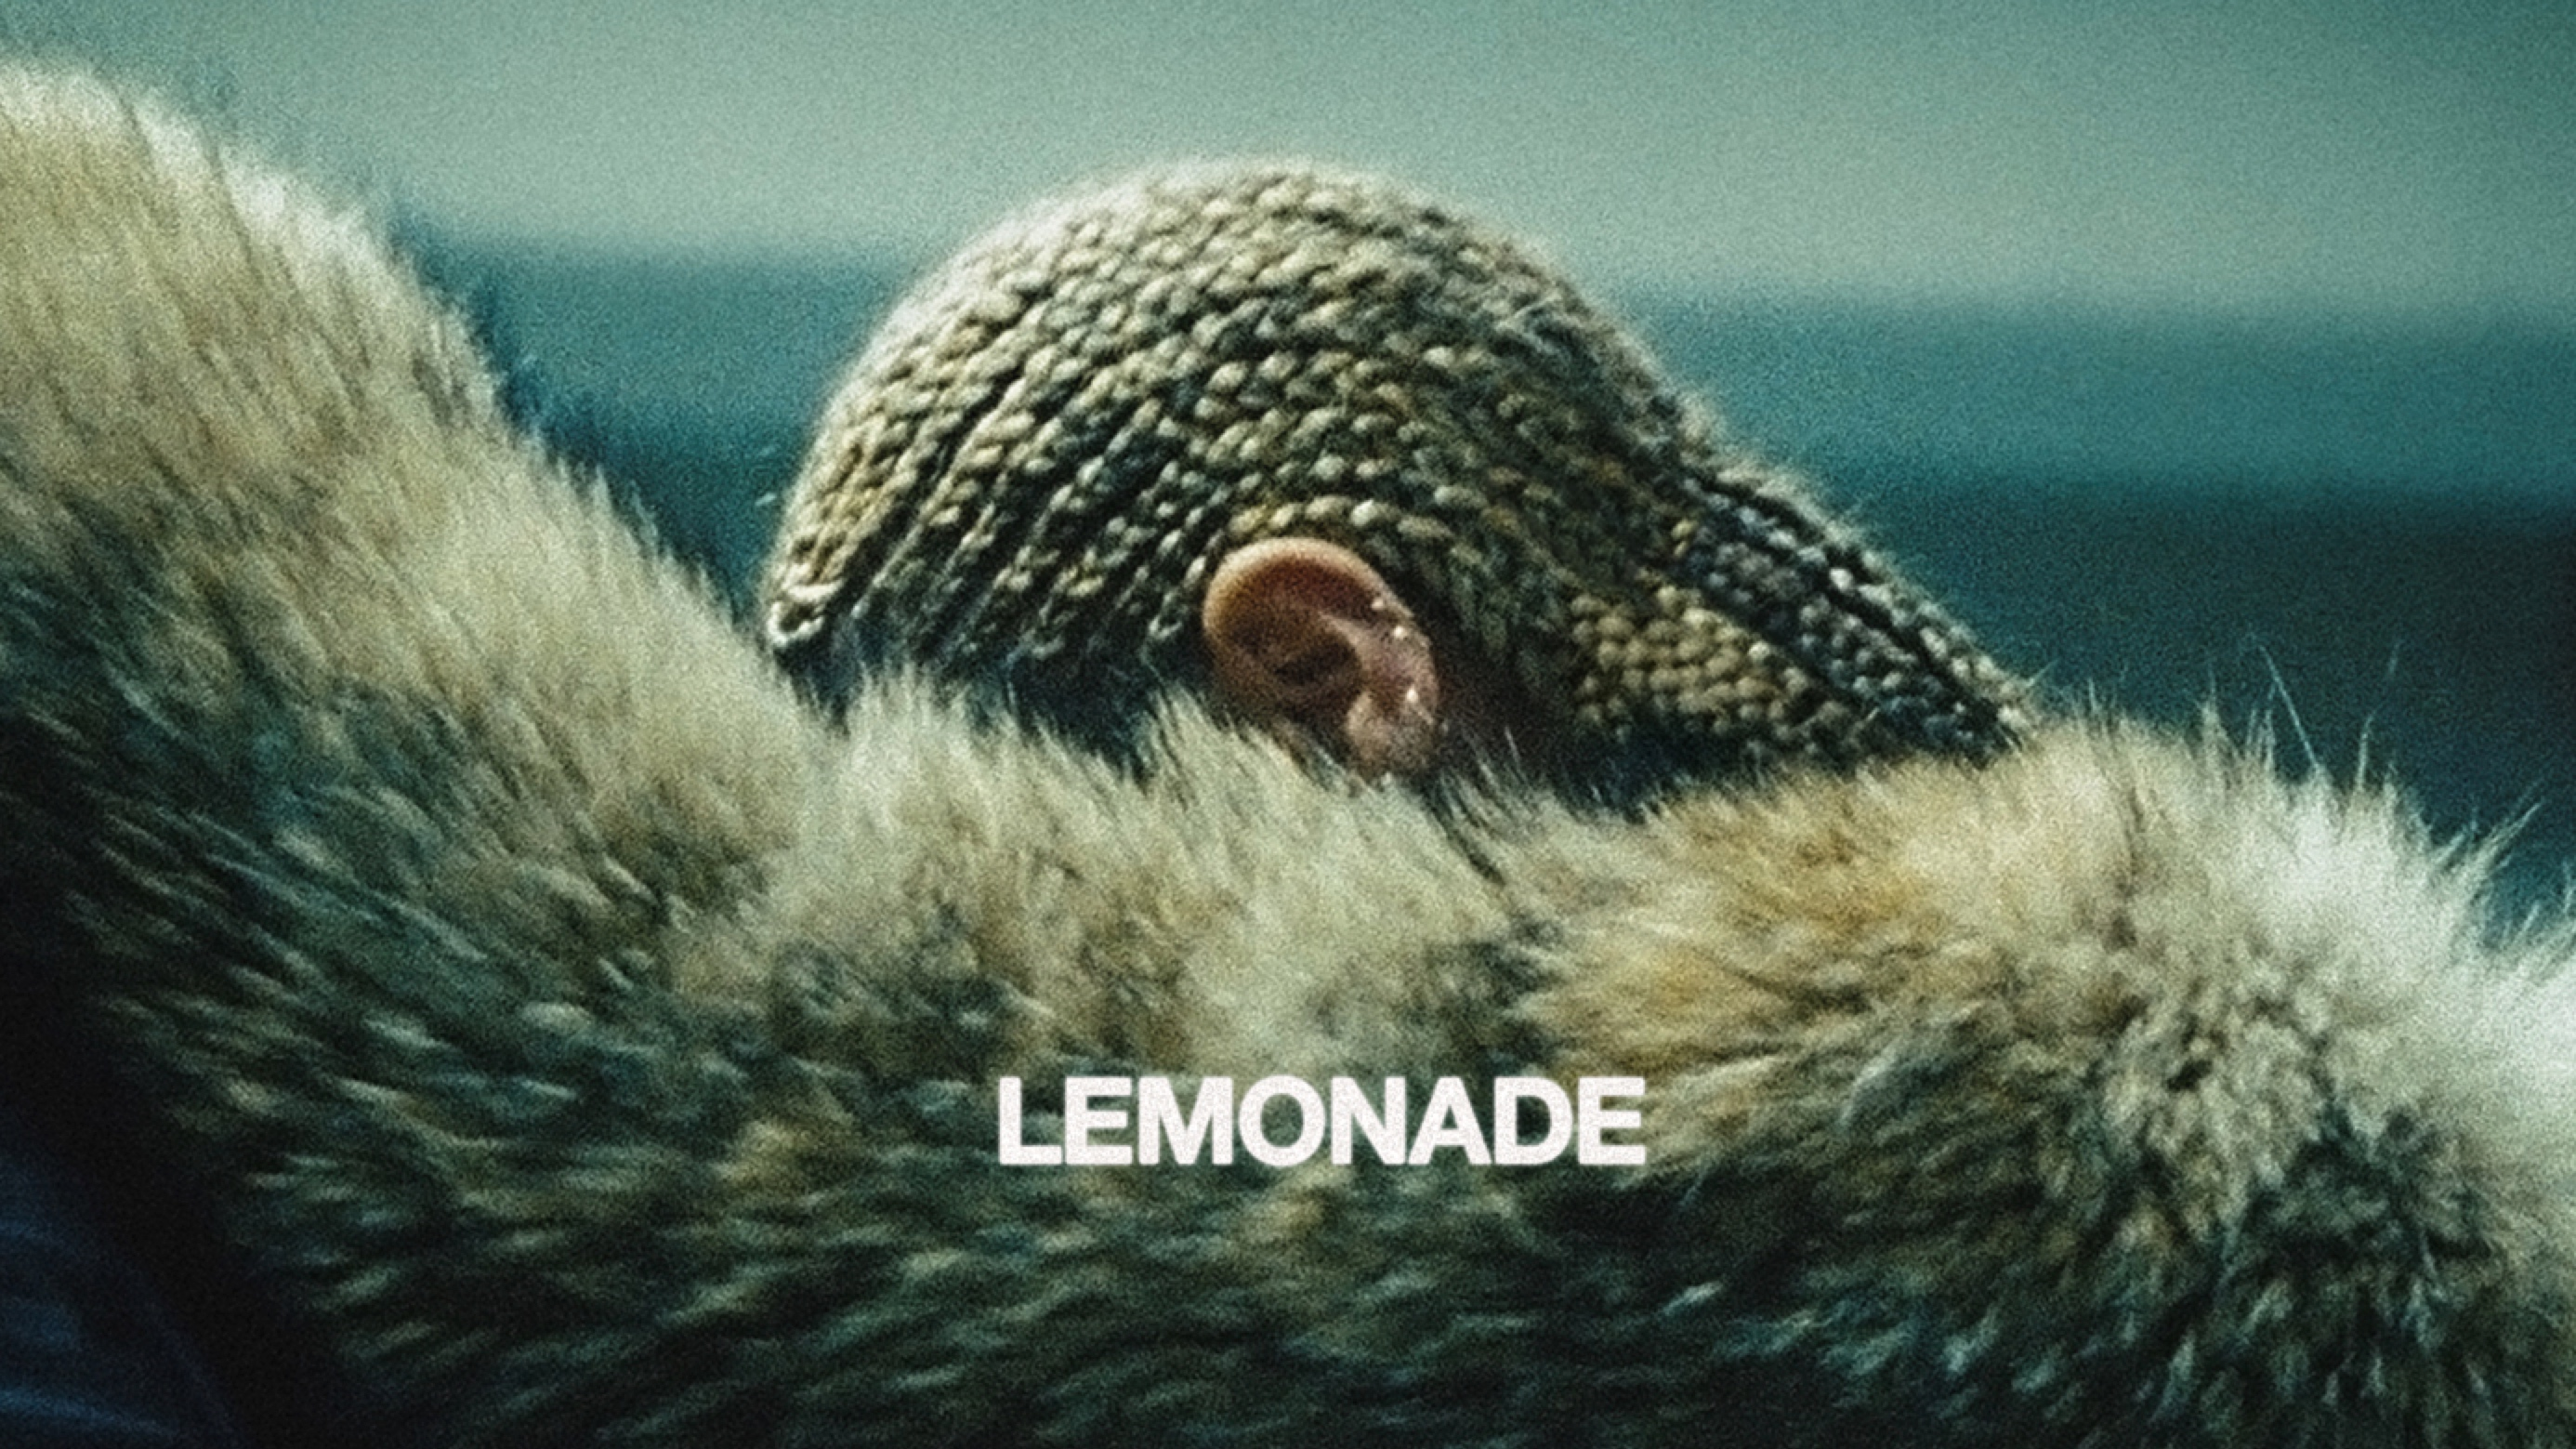 After 3 years of Tidal exclusivity, Beyonce's album 'Lemonade' is coming to Apple Music